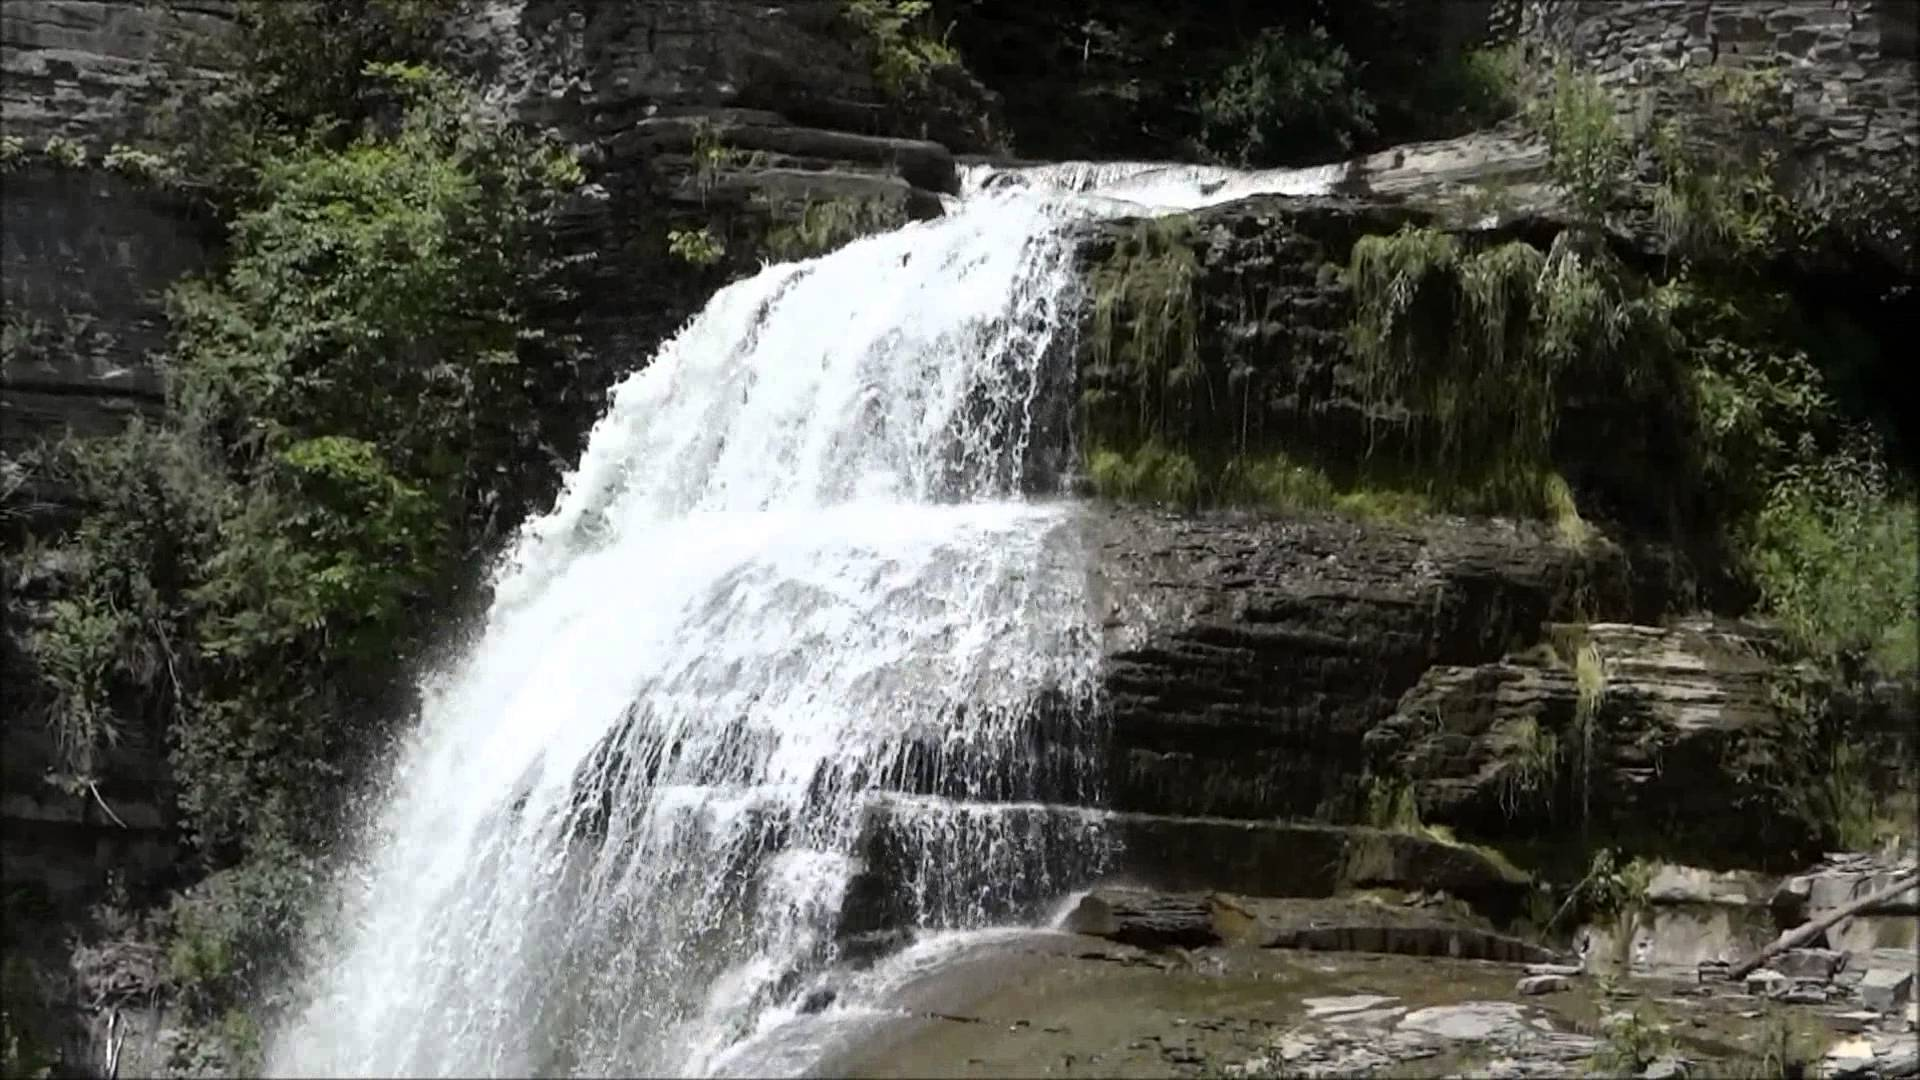 Lucifer Falls at Robert H Treman State Park, Ithaca, NY State, July ...